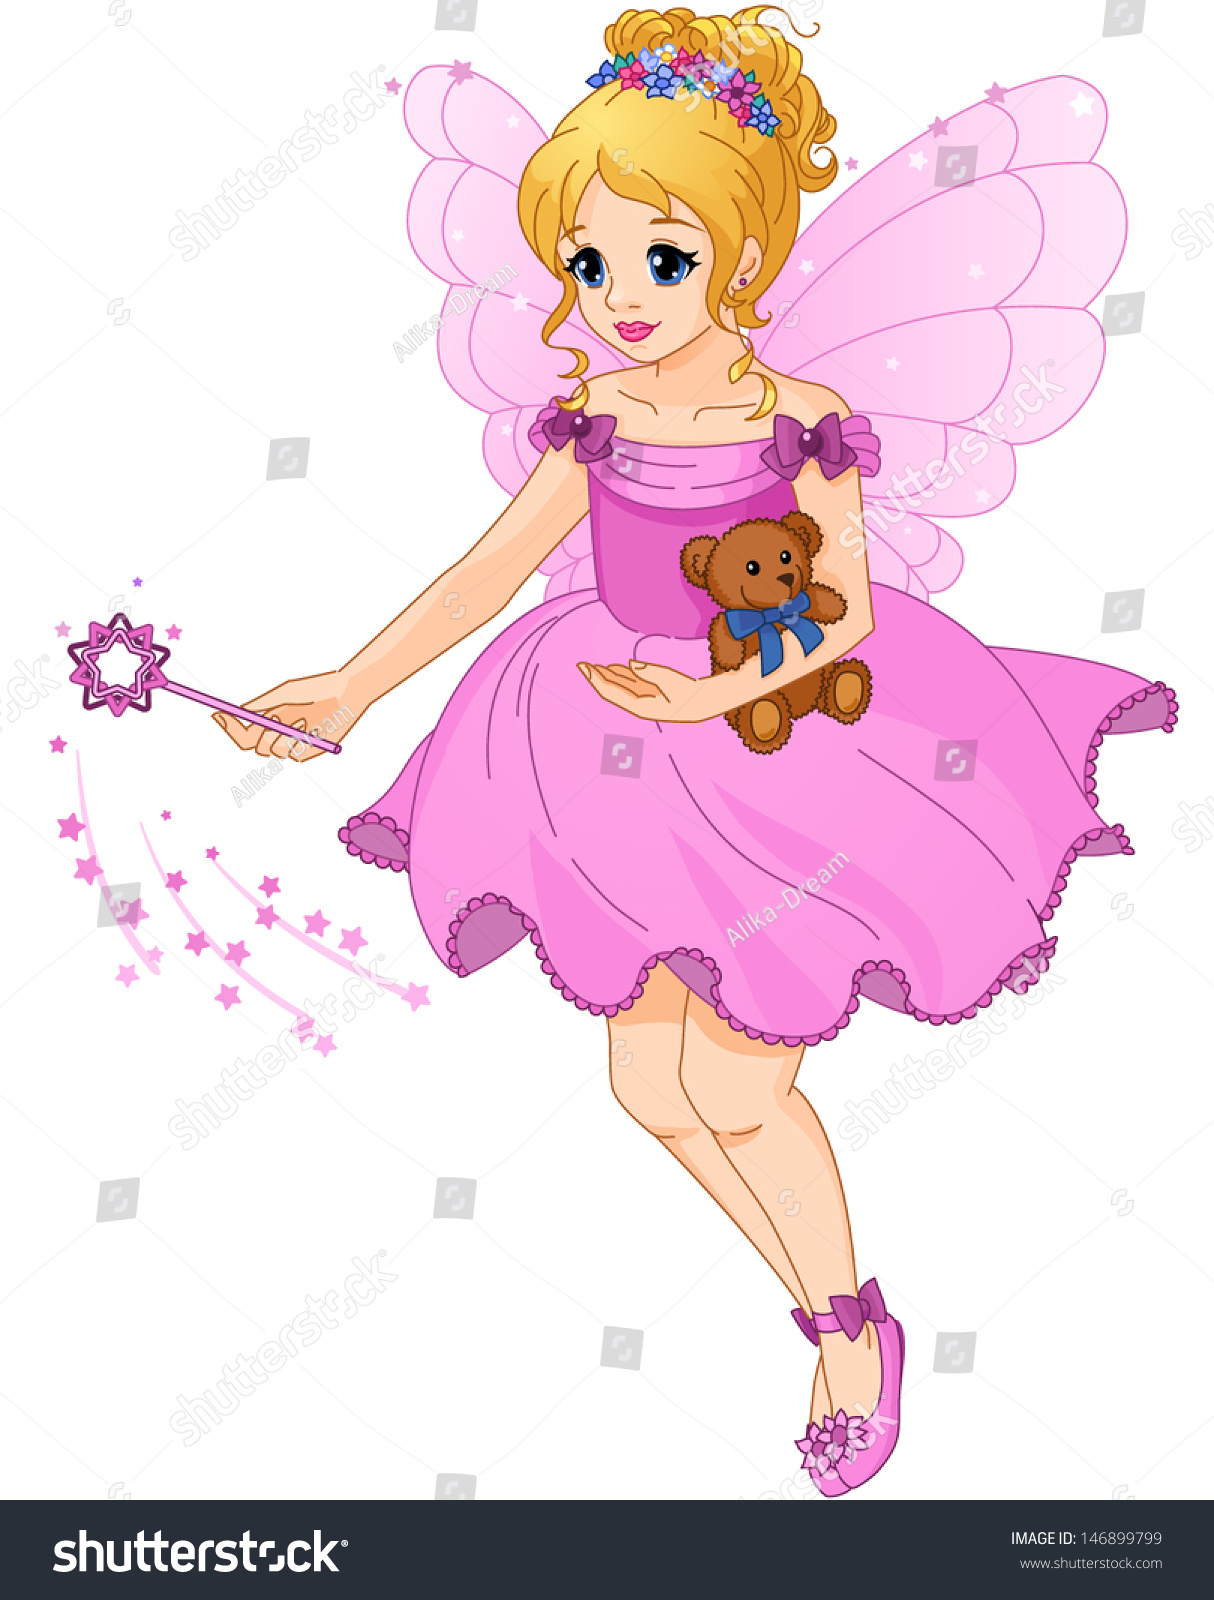 Fairy Games  Free online Games for Girls  GGGcom